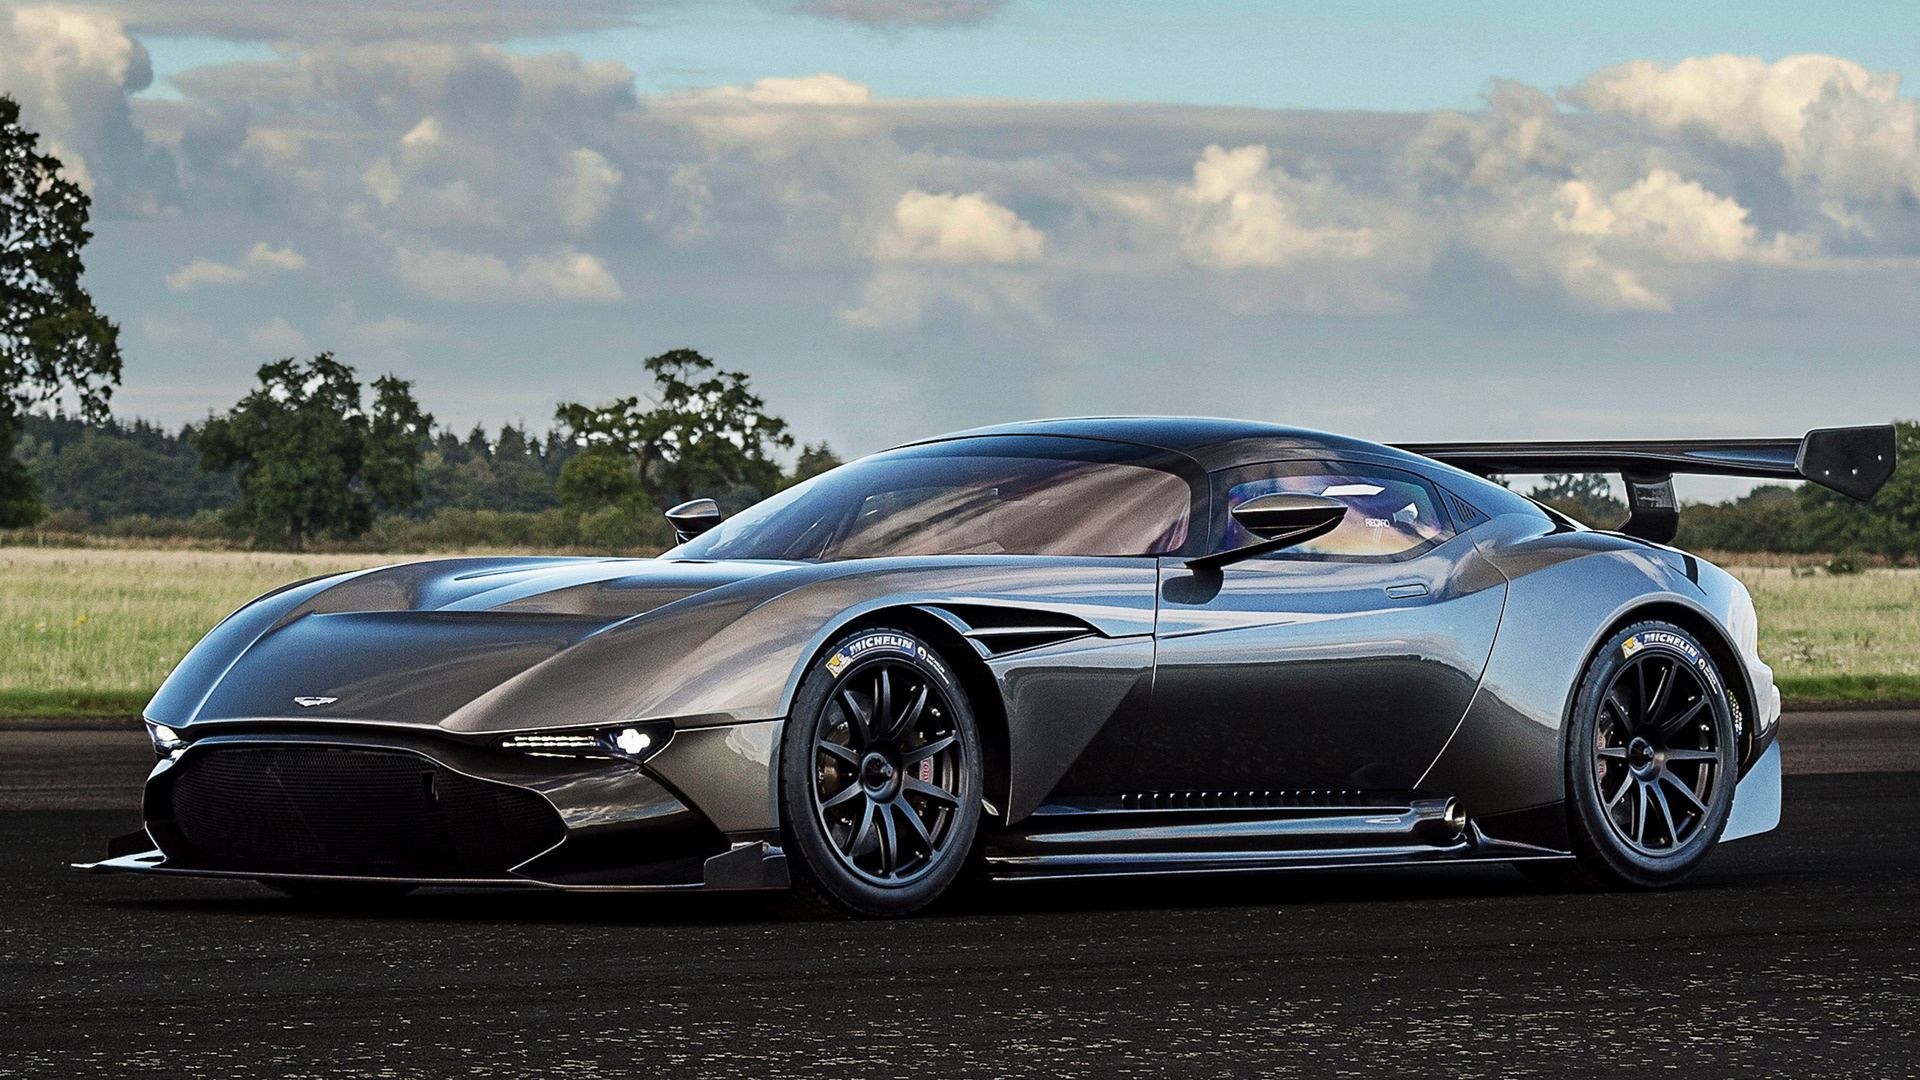 Aston Vulcan Pagani Huayra Bc Gta Spano in addition 3225 as well Geneva 2017 Aston Martin Rb 001 Hypercar moreover Watch likewise Wallpaper 03. on aston martin vulcan